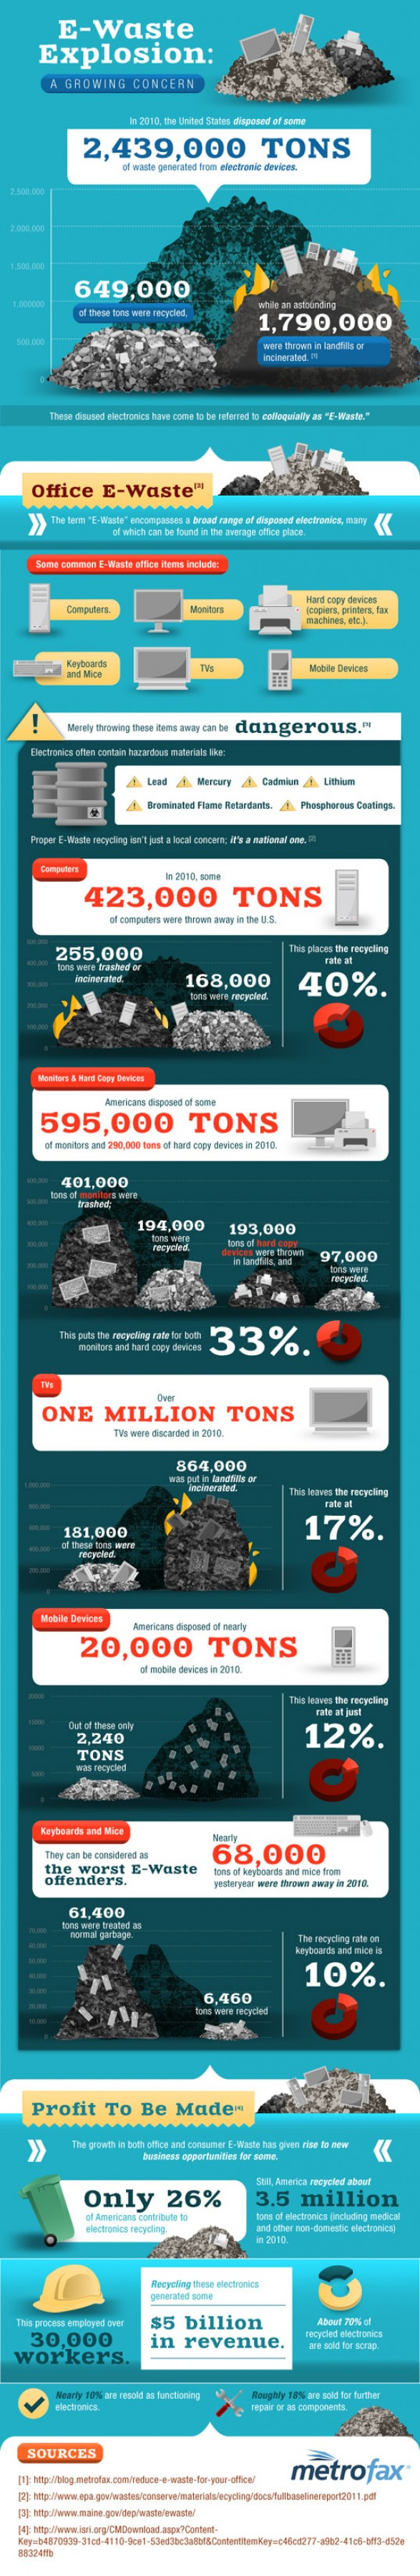 https://i0.wp.com/media.navigatored.com/images/ewaste-explostion-a-growing-concern_51549fa158f4c_w587.jpg